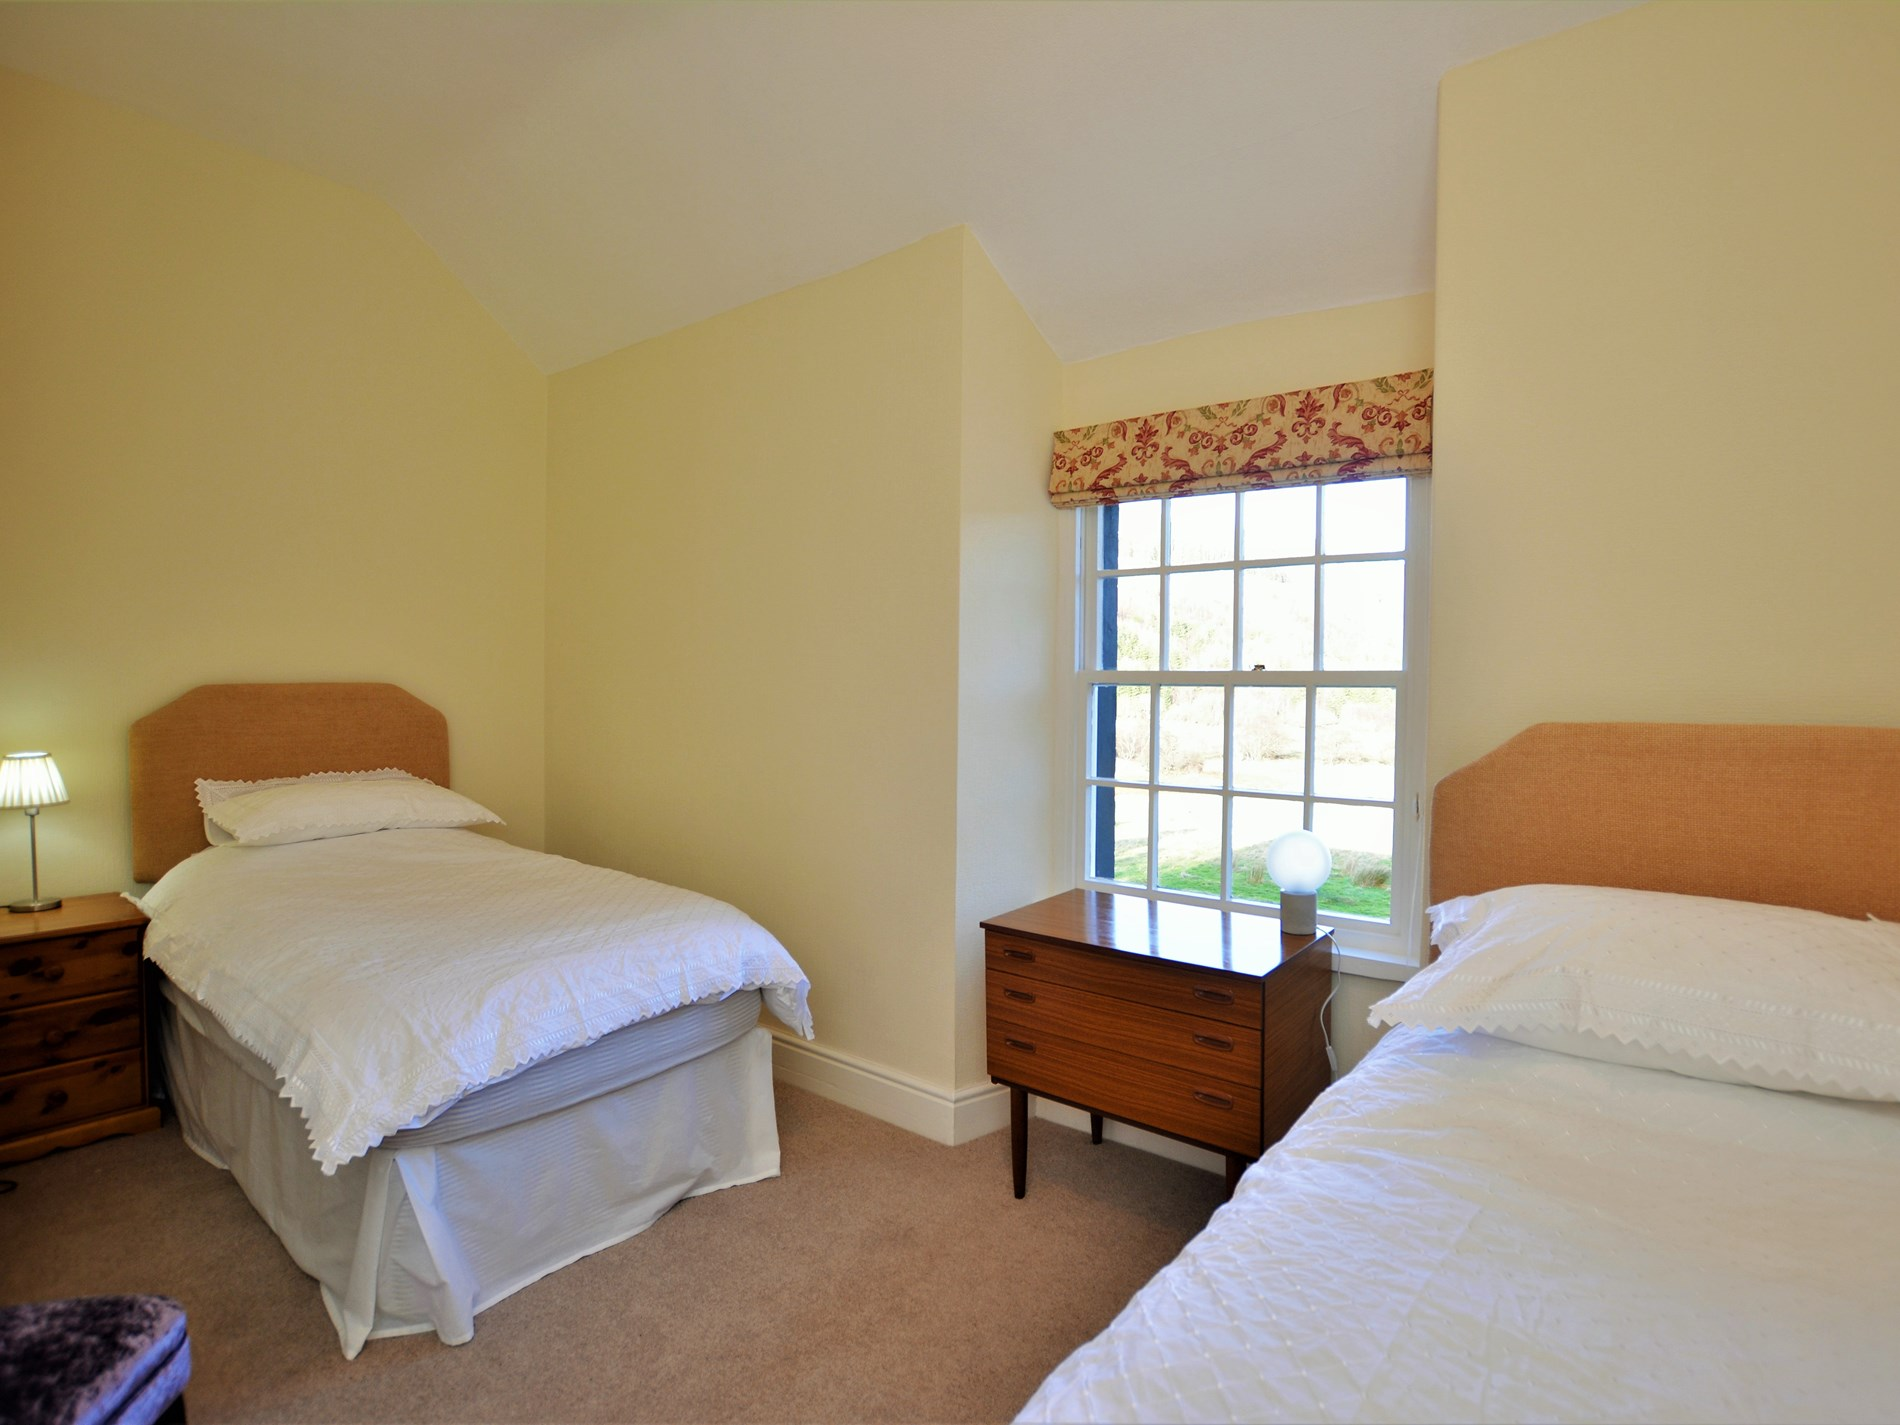 3 Bedroom Cottage in Trefriw, Snowdonia, North Wales and Cheshire